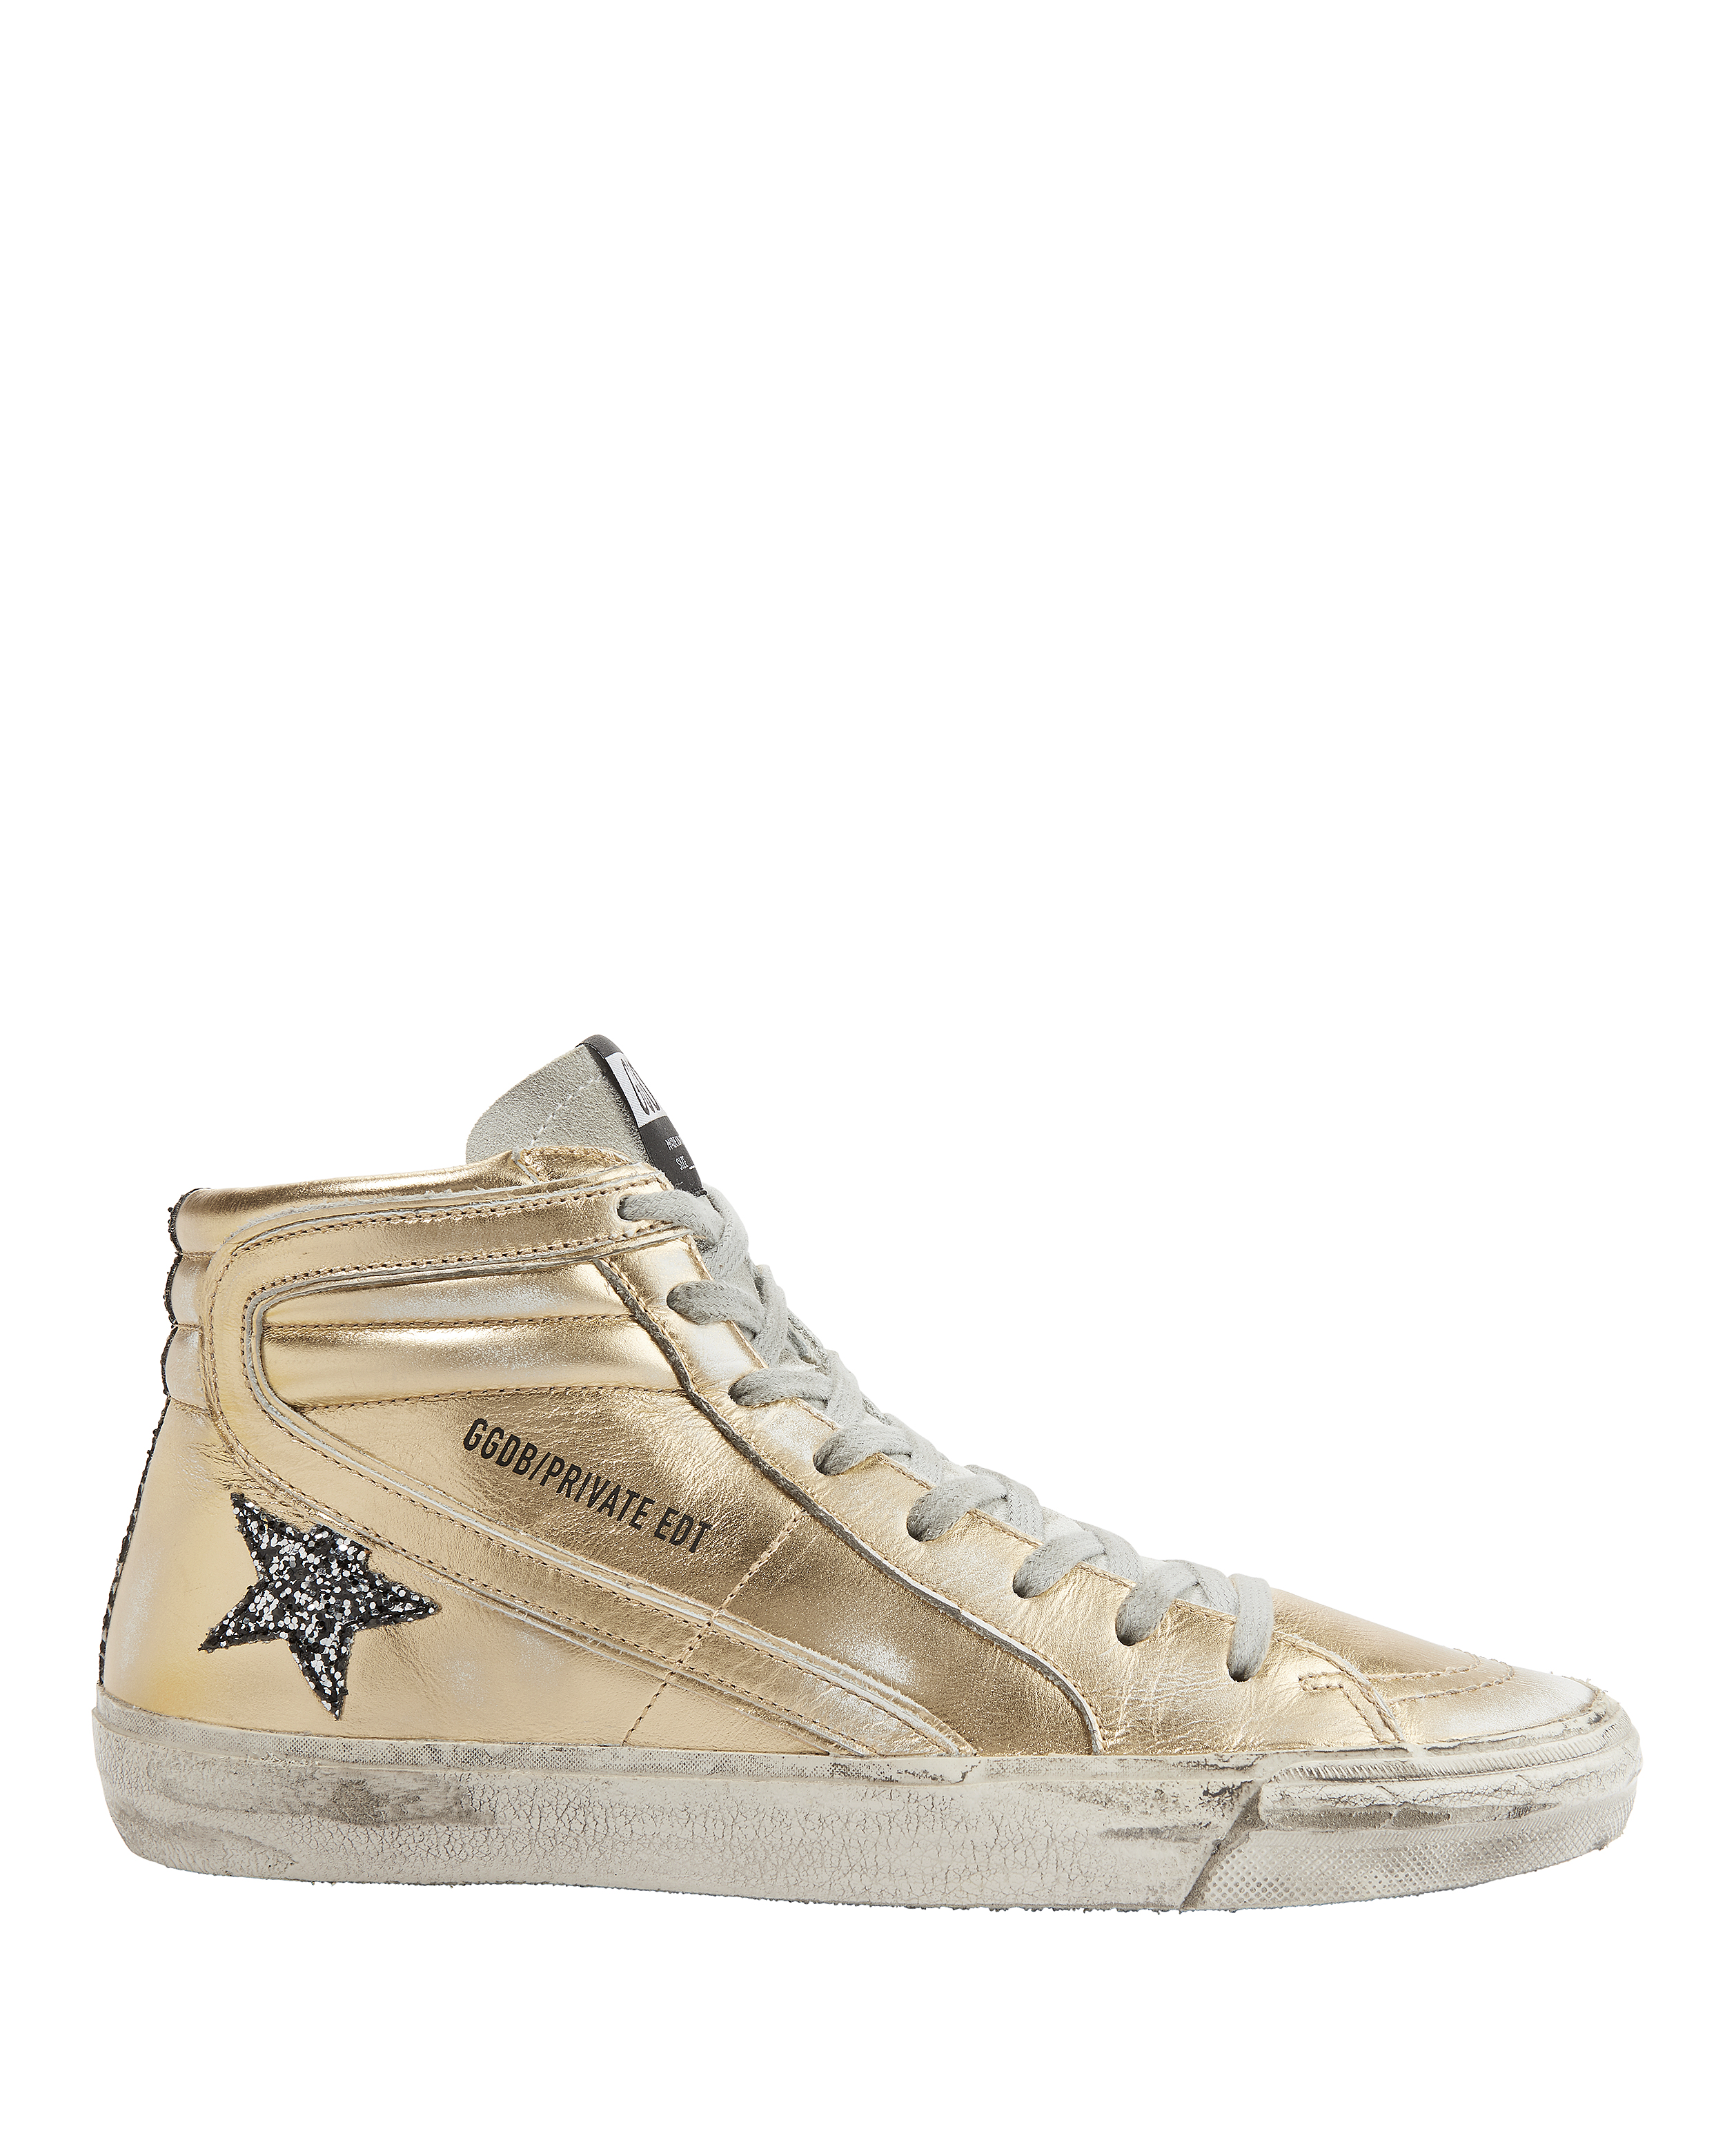 Slide Glitter Star Gold Leather High-Top Sneakers